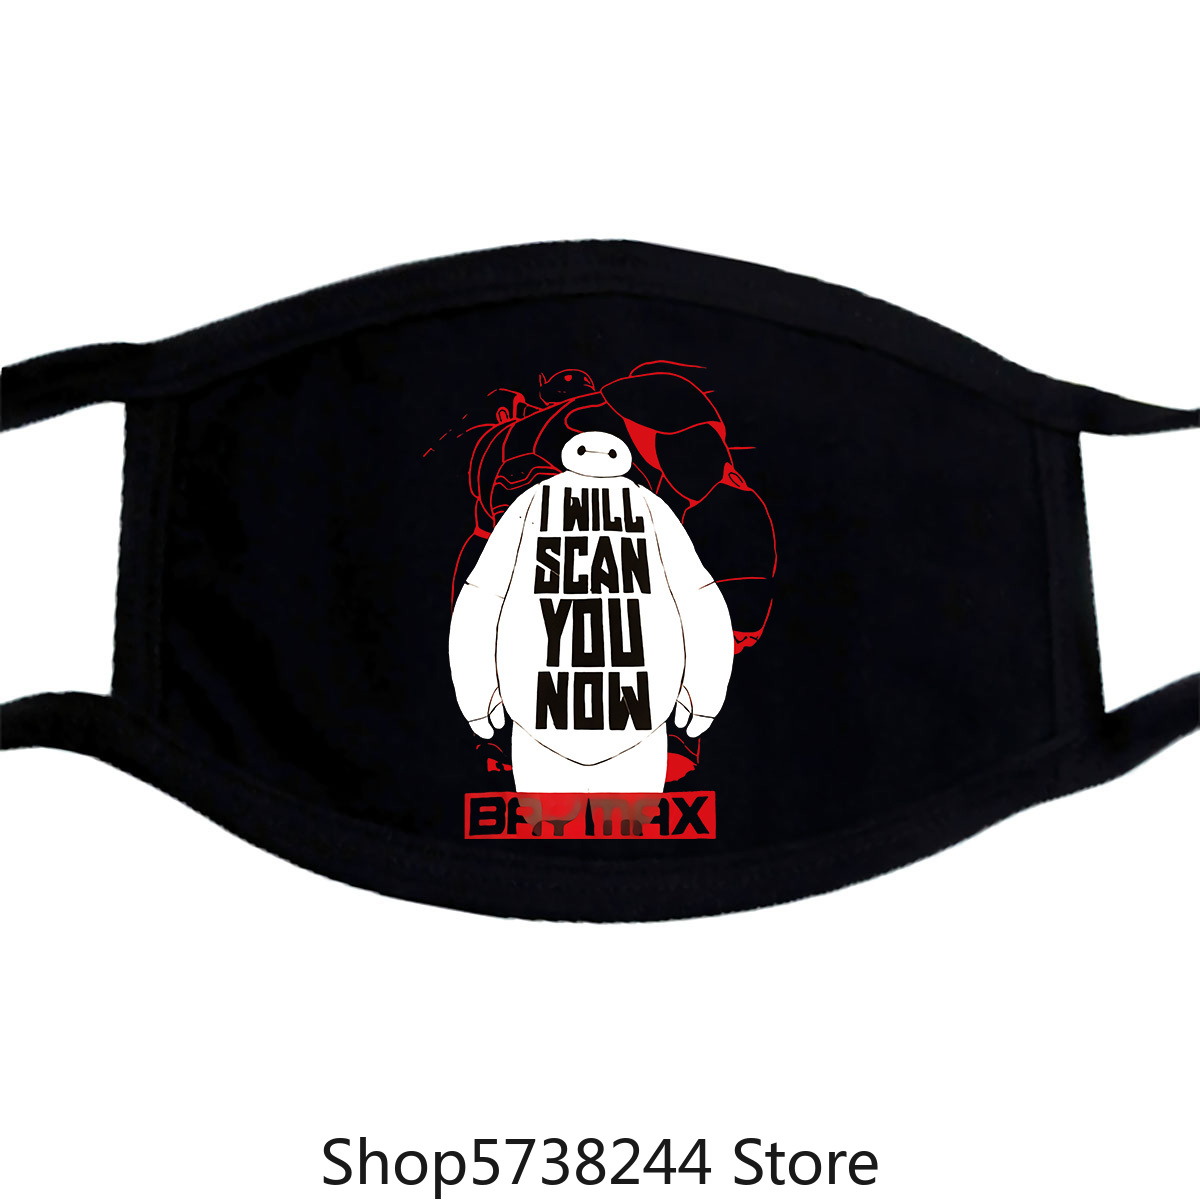 Big Hero 6 Baymax'I Will Scan You Now' Boy'S Black Tee Mask L 10/12 Washable Reusable Mask With